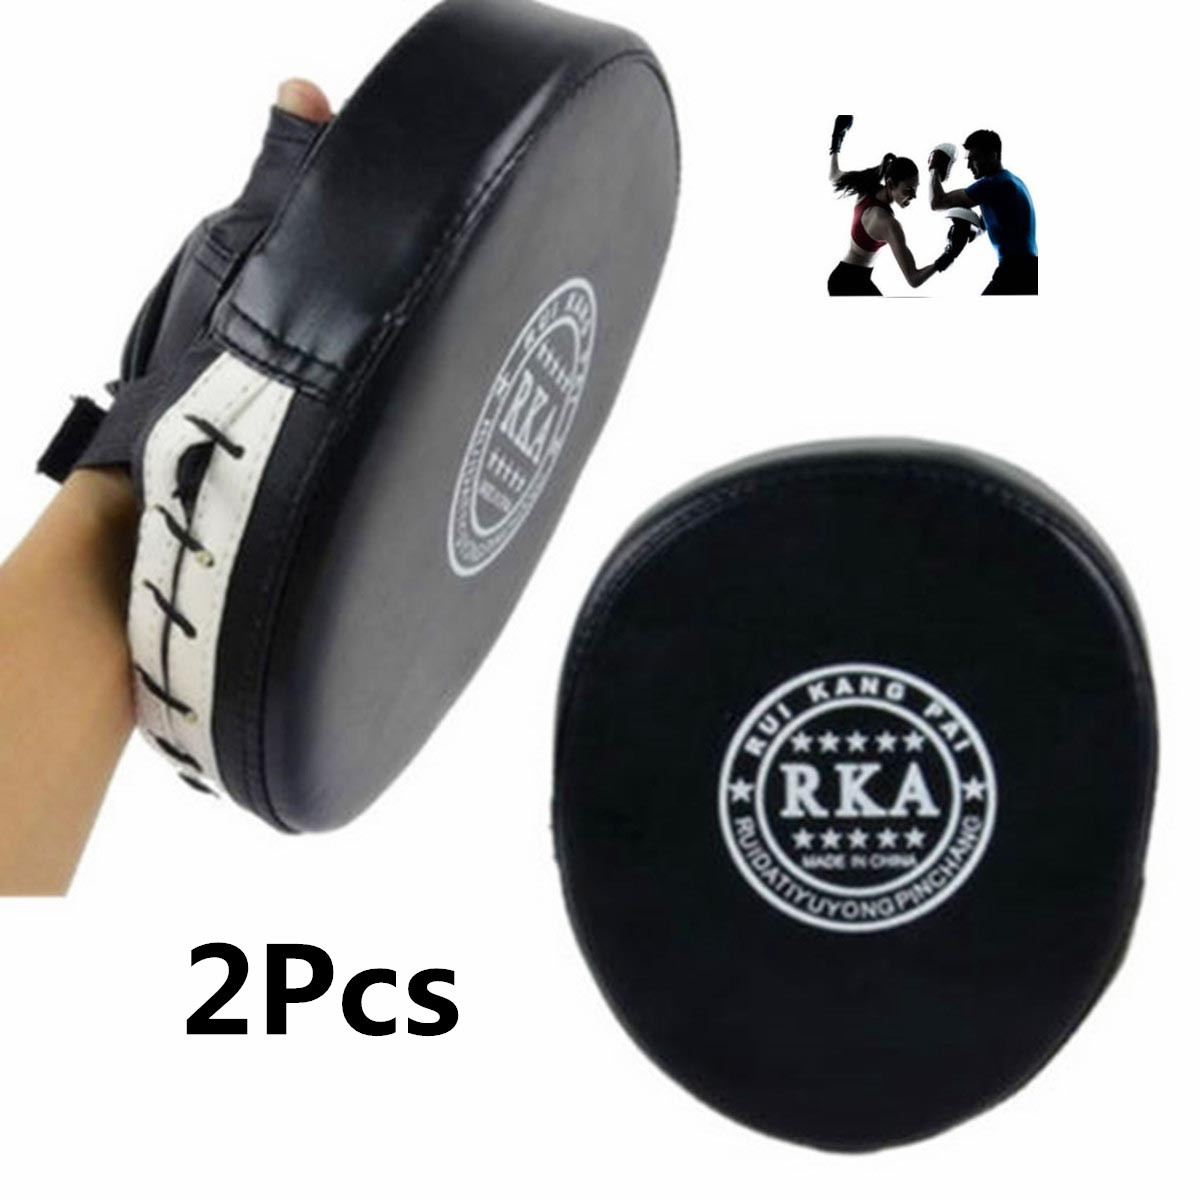 2x Thai Leather Boxing Mitt Training Target boxing Focus Kick MMA Punch Glove Pad Combat Karate Muay